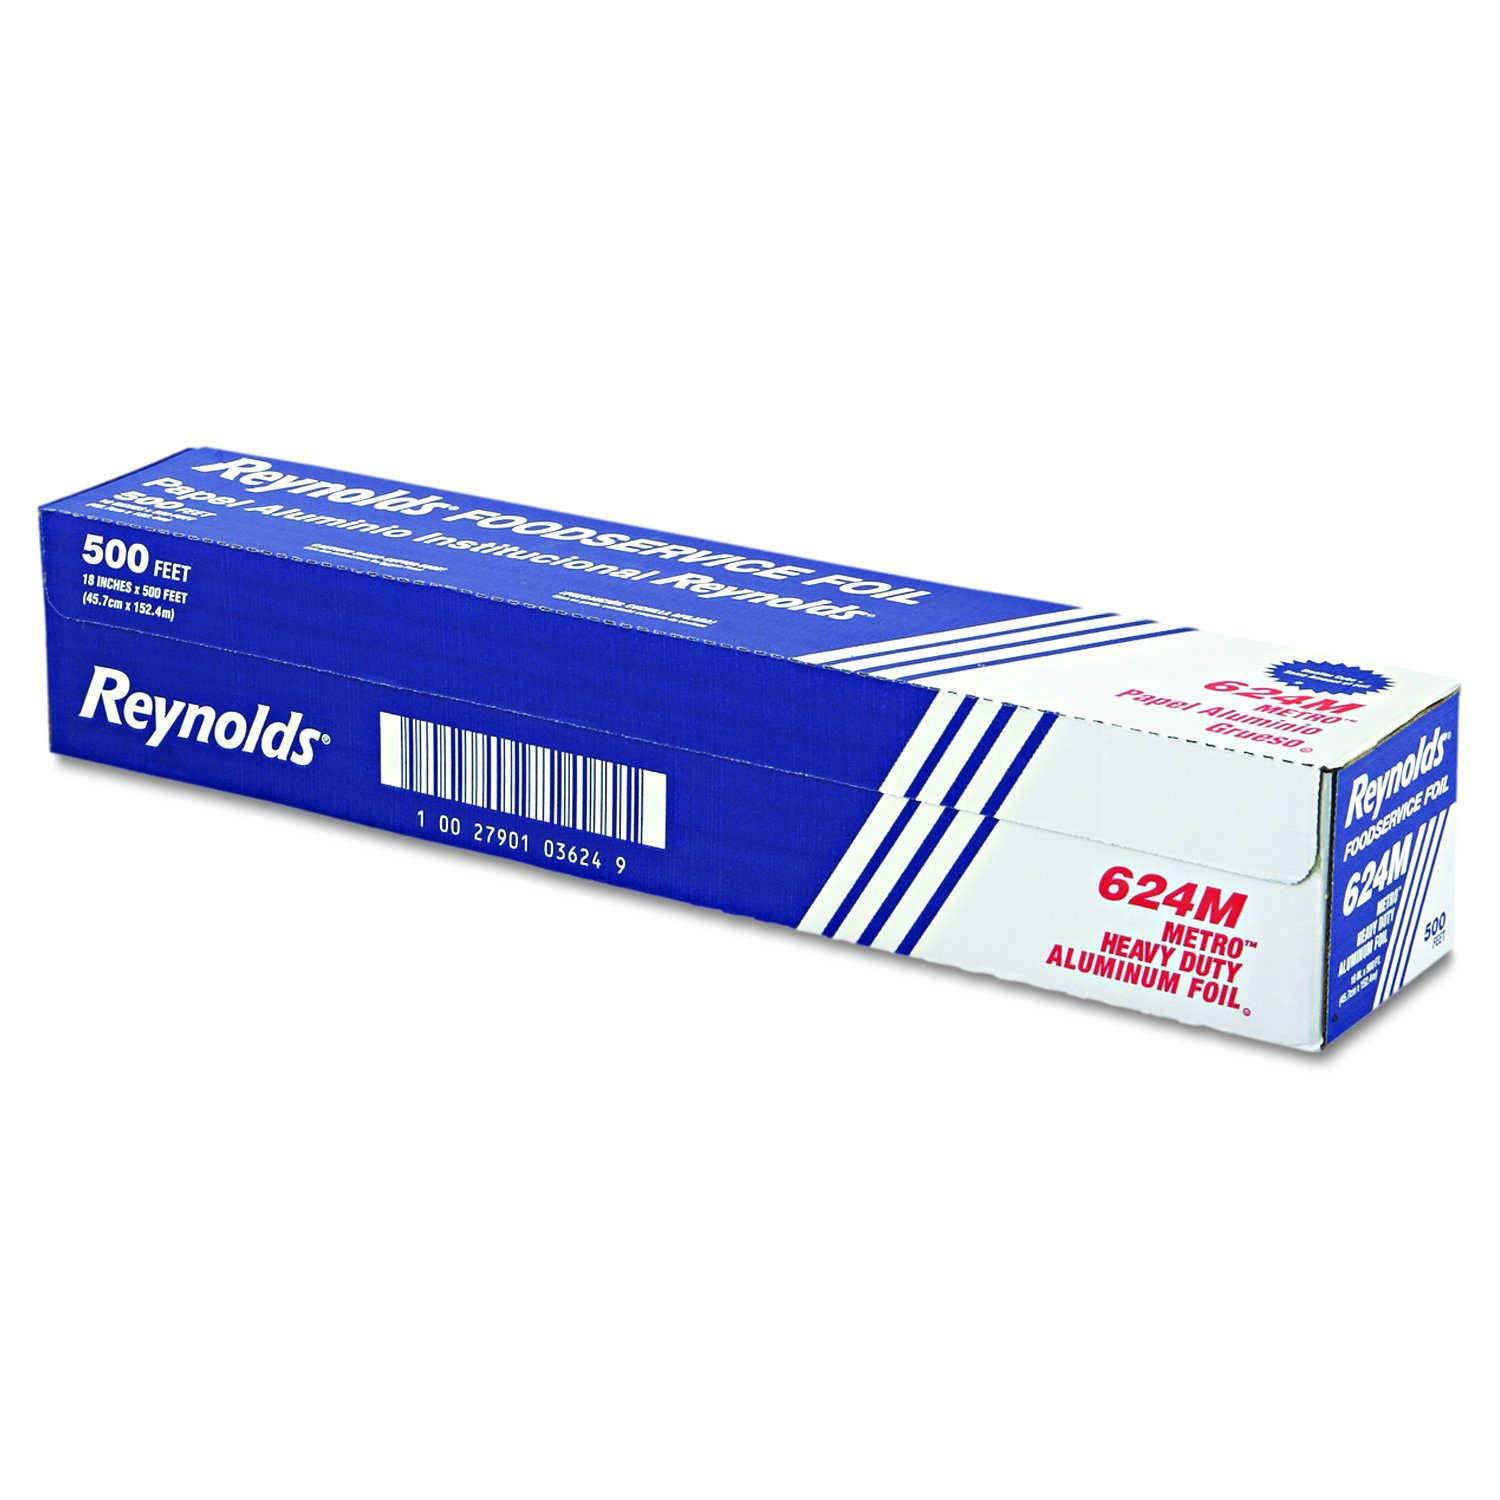 Reynolds Wrap 624M Metro Aluminum Foil Roll, Lighter Gauge Standard, 18